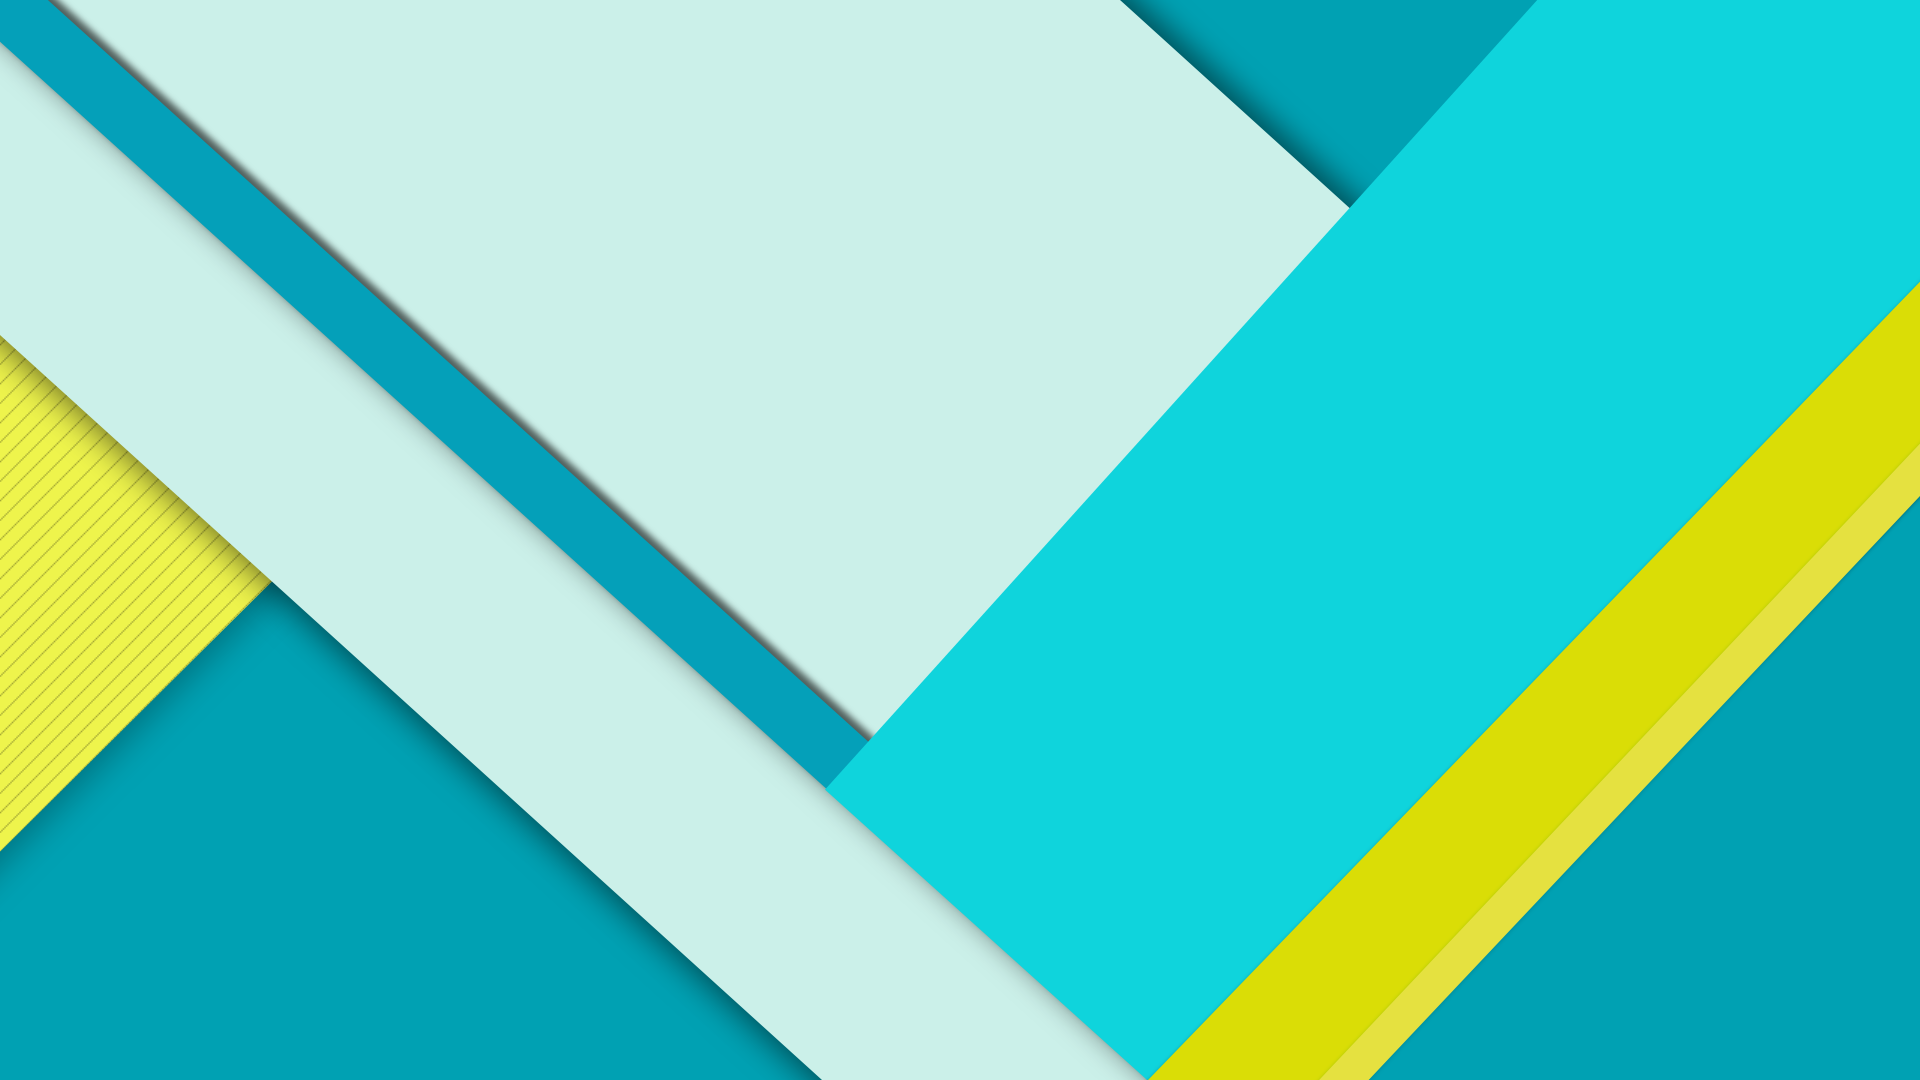 40 Best Material Design Wallpapers 4K 2016 HD Windows 7